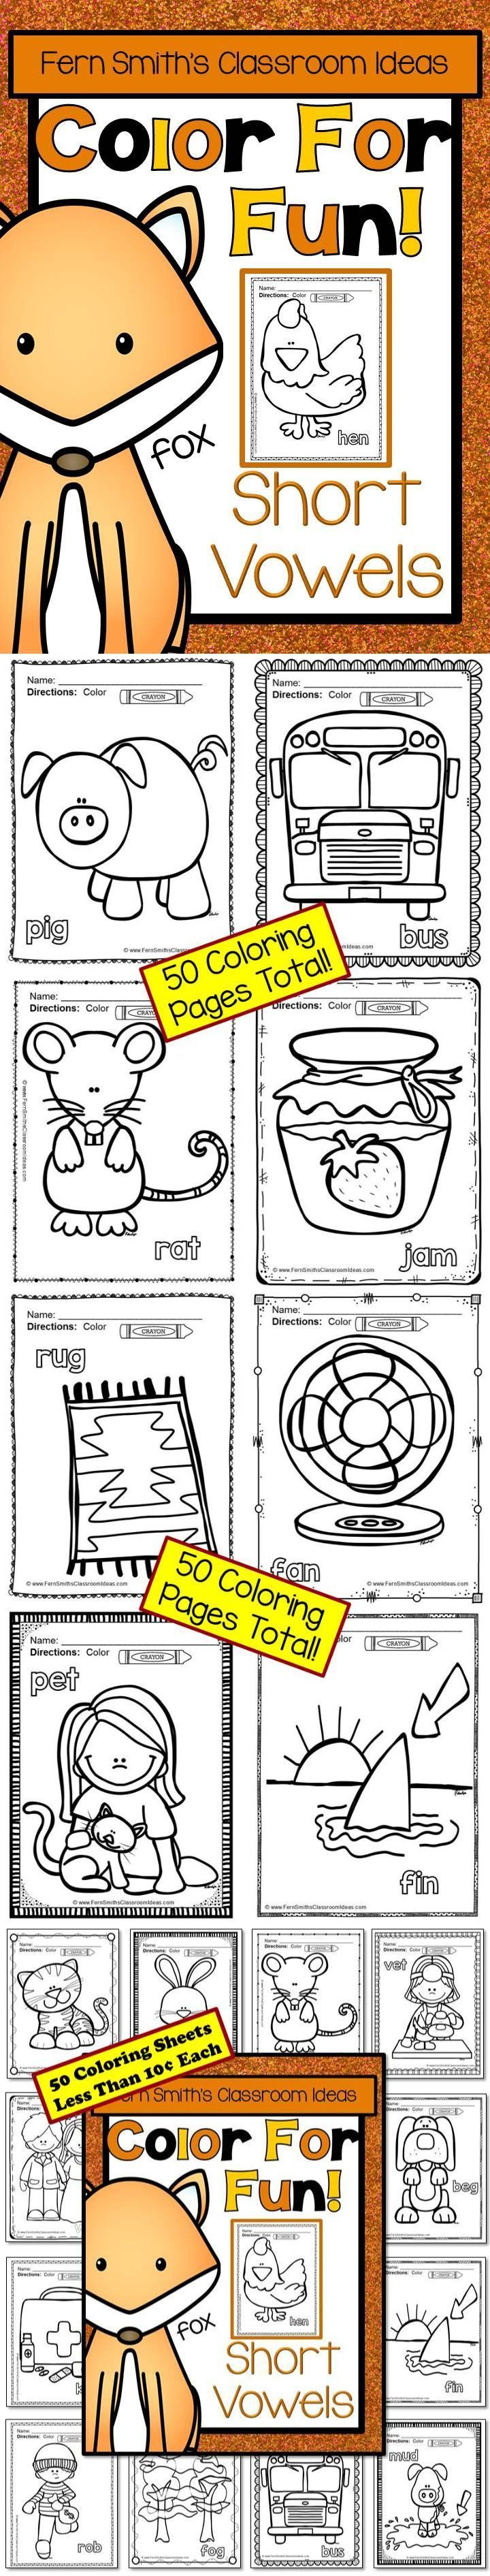 Coloring Pages For Vowels : Coloring pages for short vowels shorts colors and the o